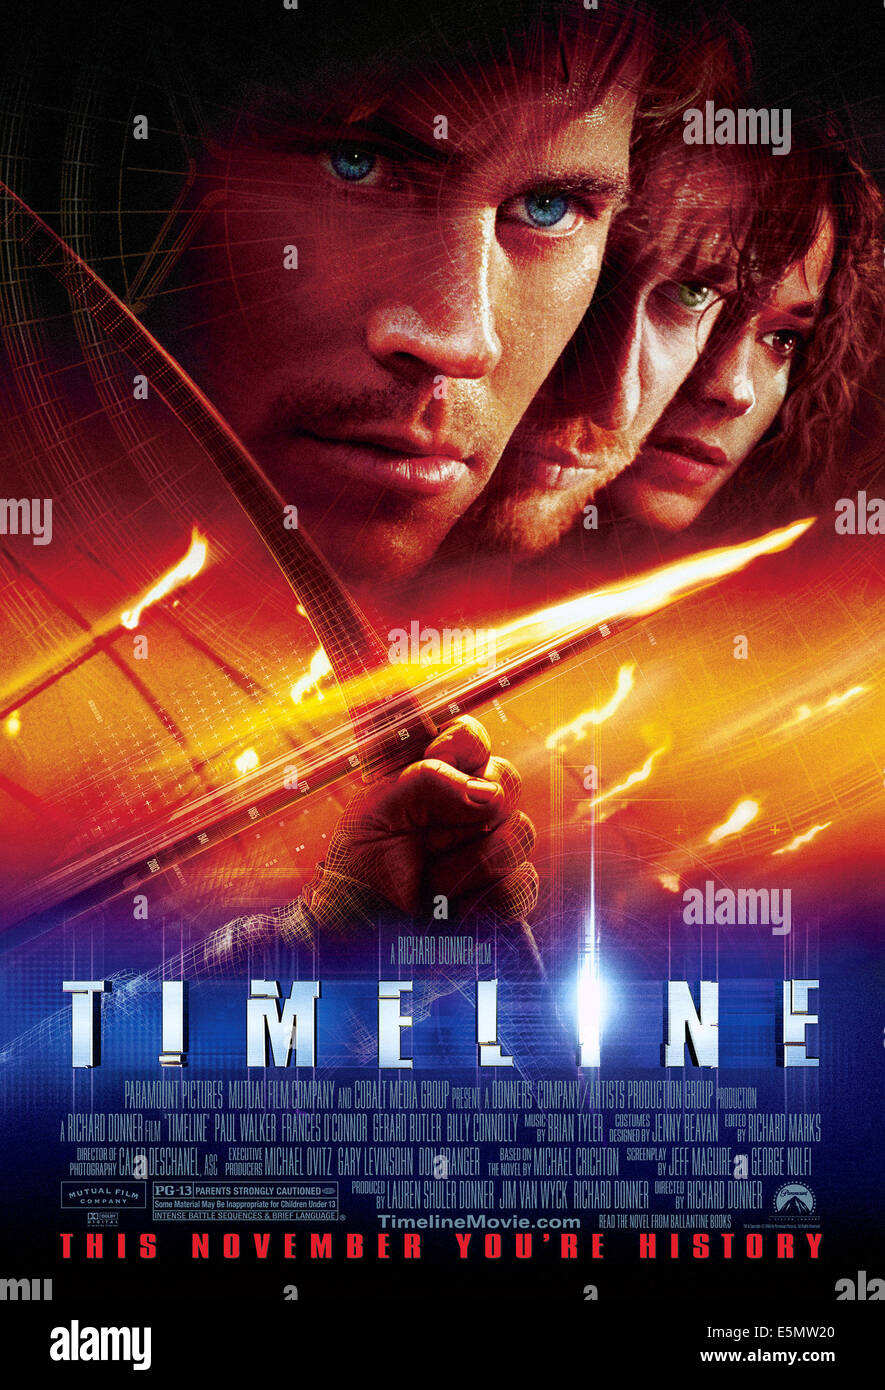 TIMELINE, 2003, (c) Paramount/courtesy Everett Collection - Stock Image